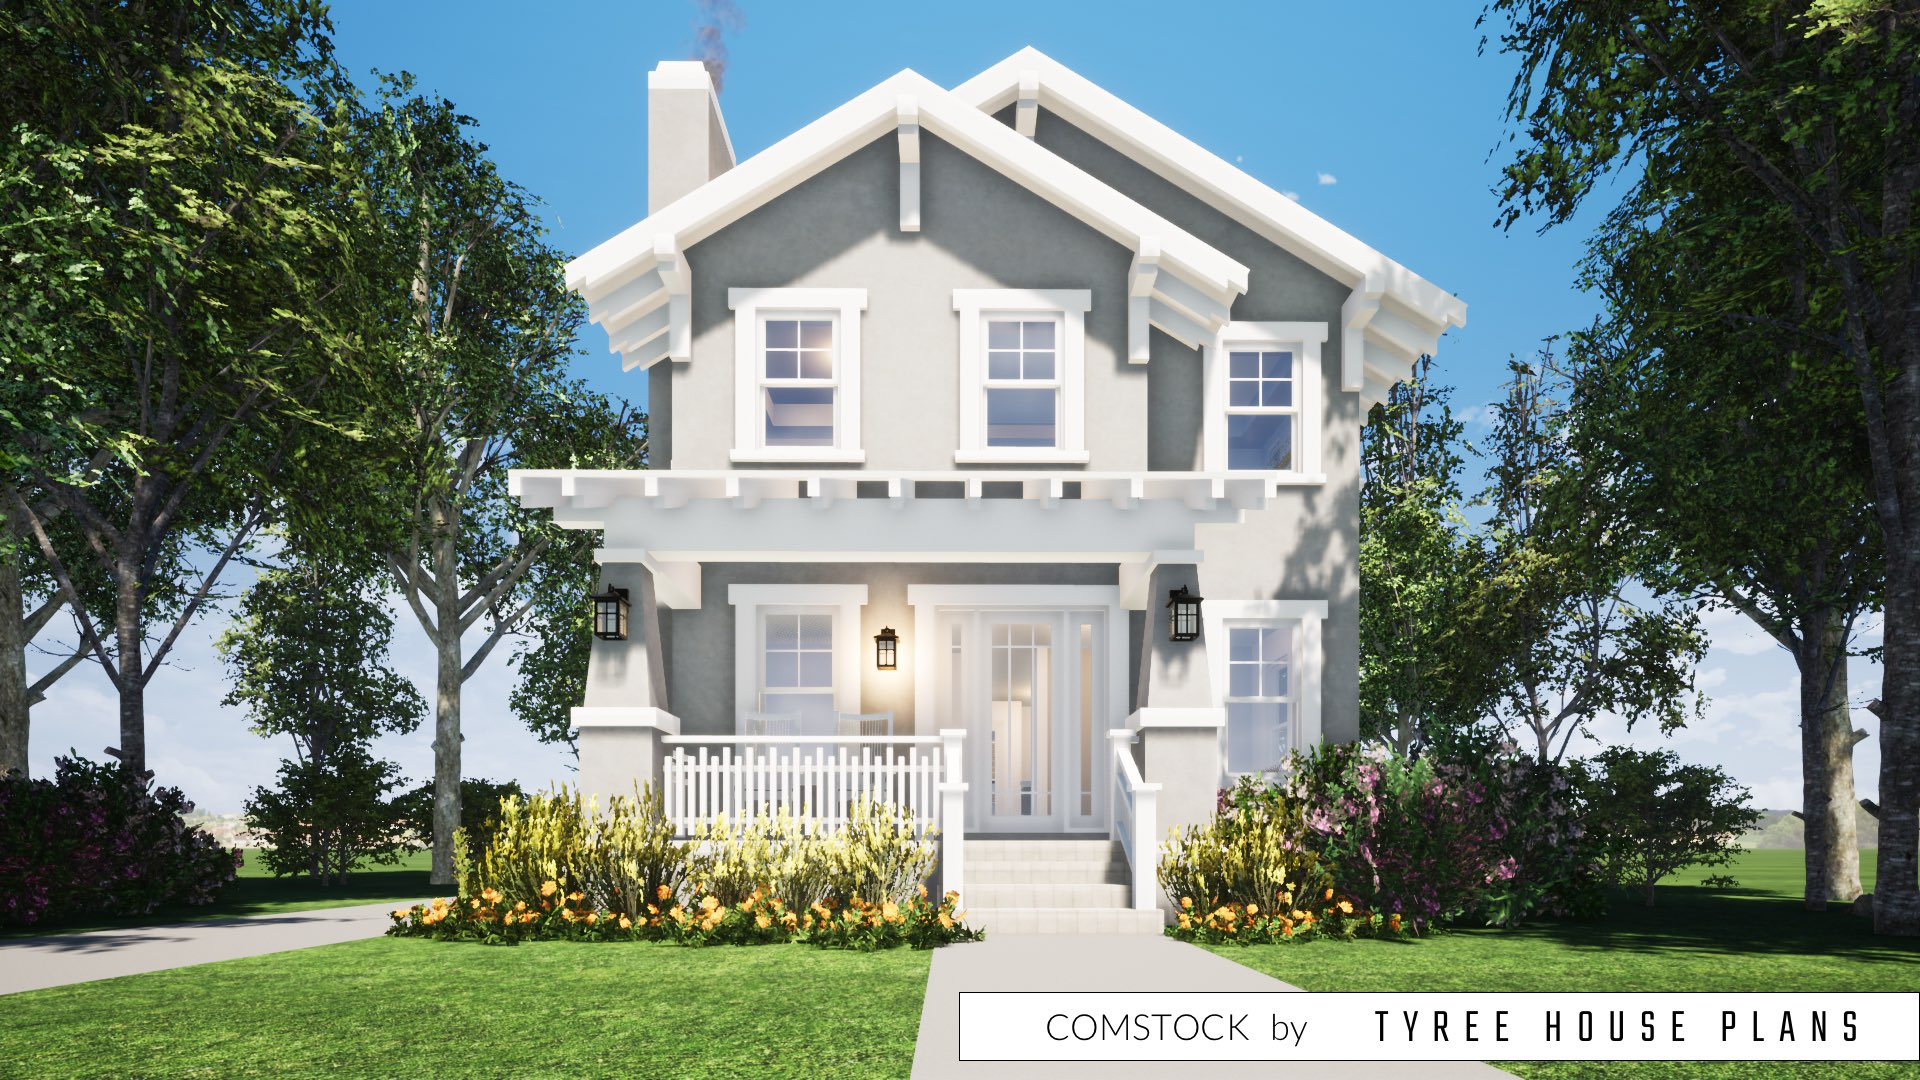 Comstock House Plan by Tyree House Plans